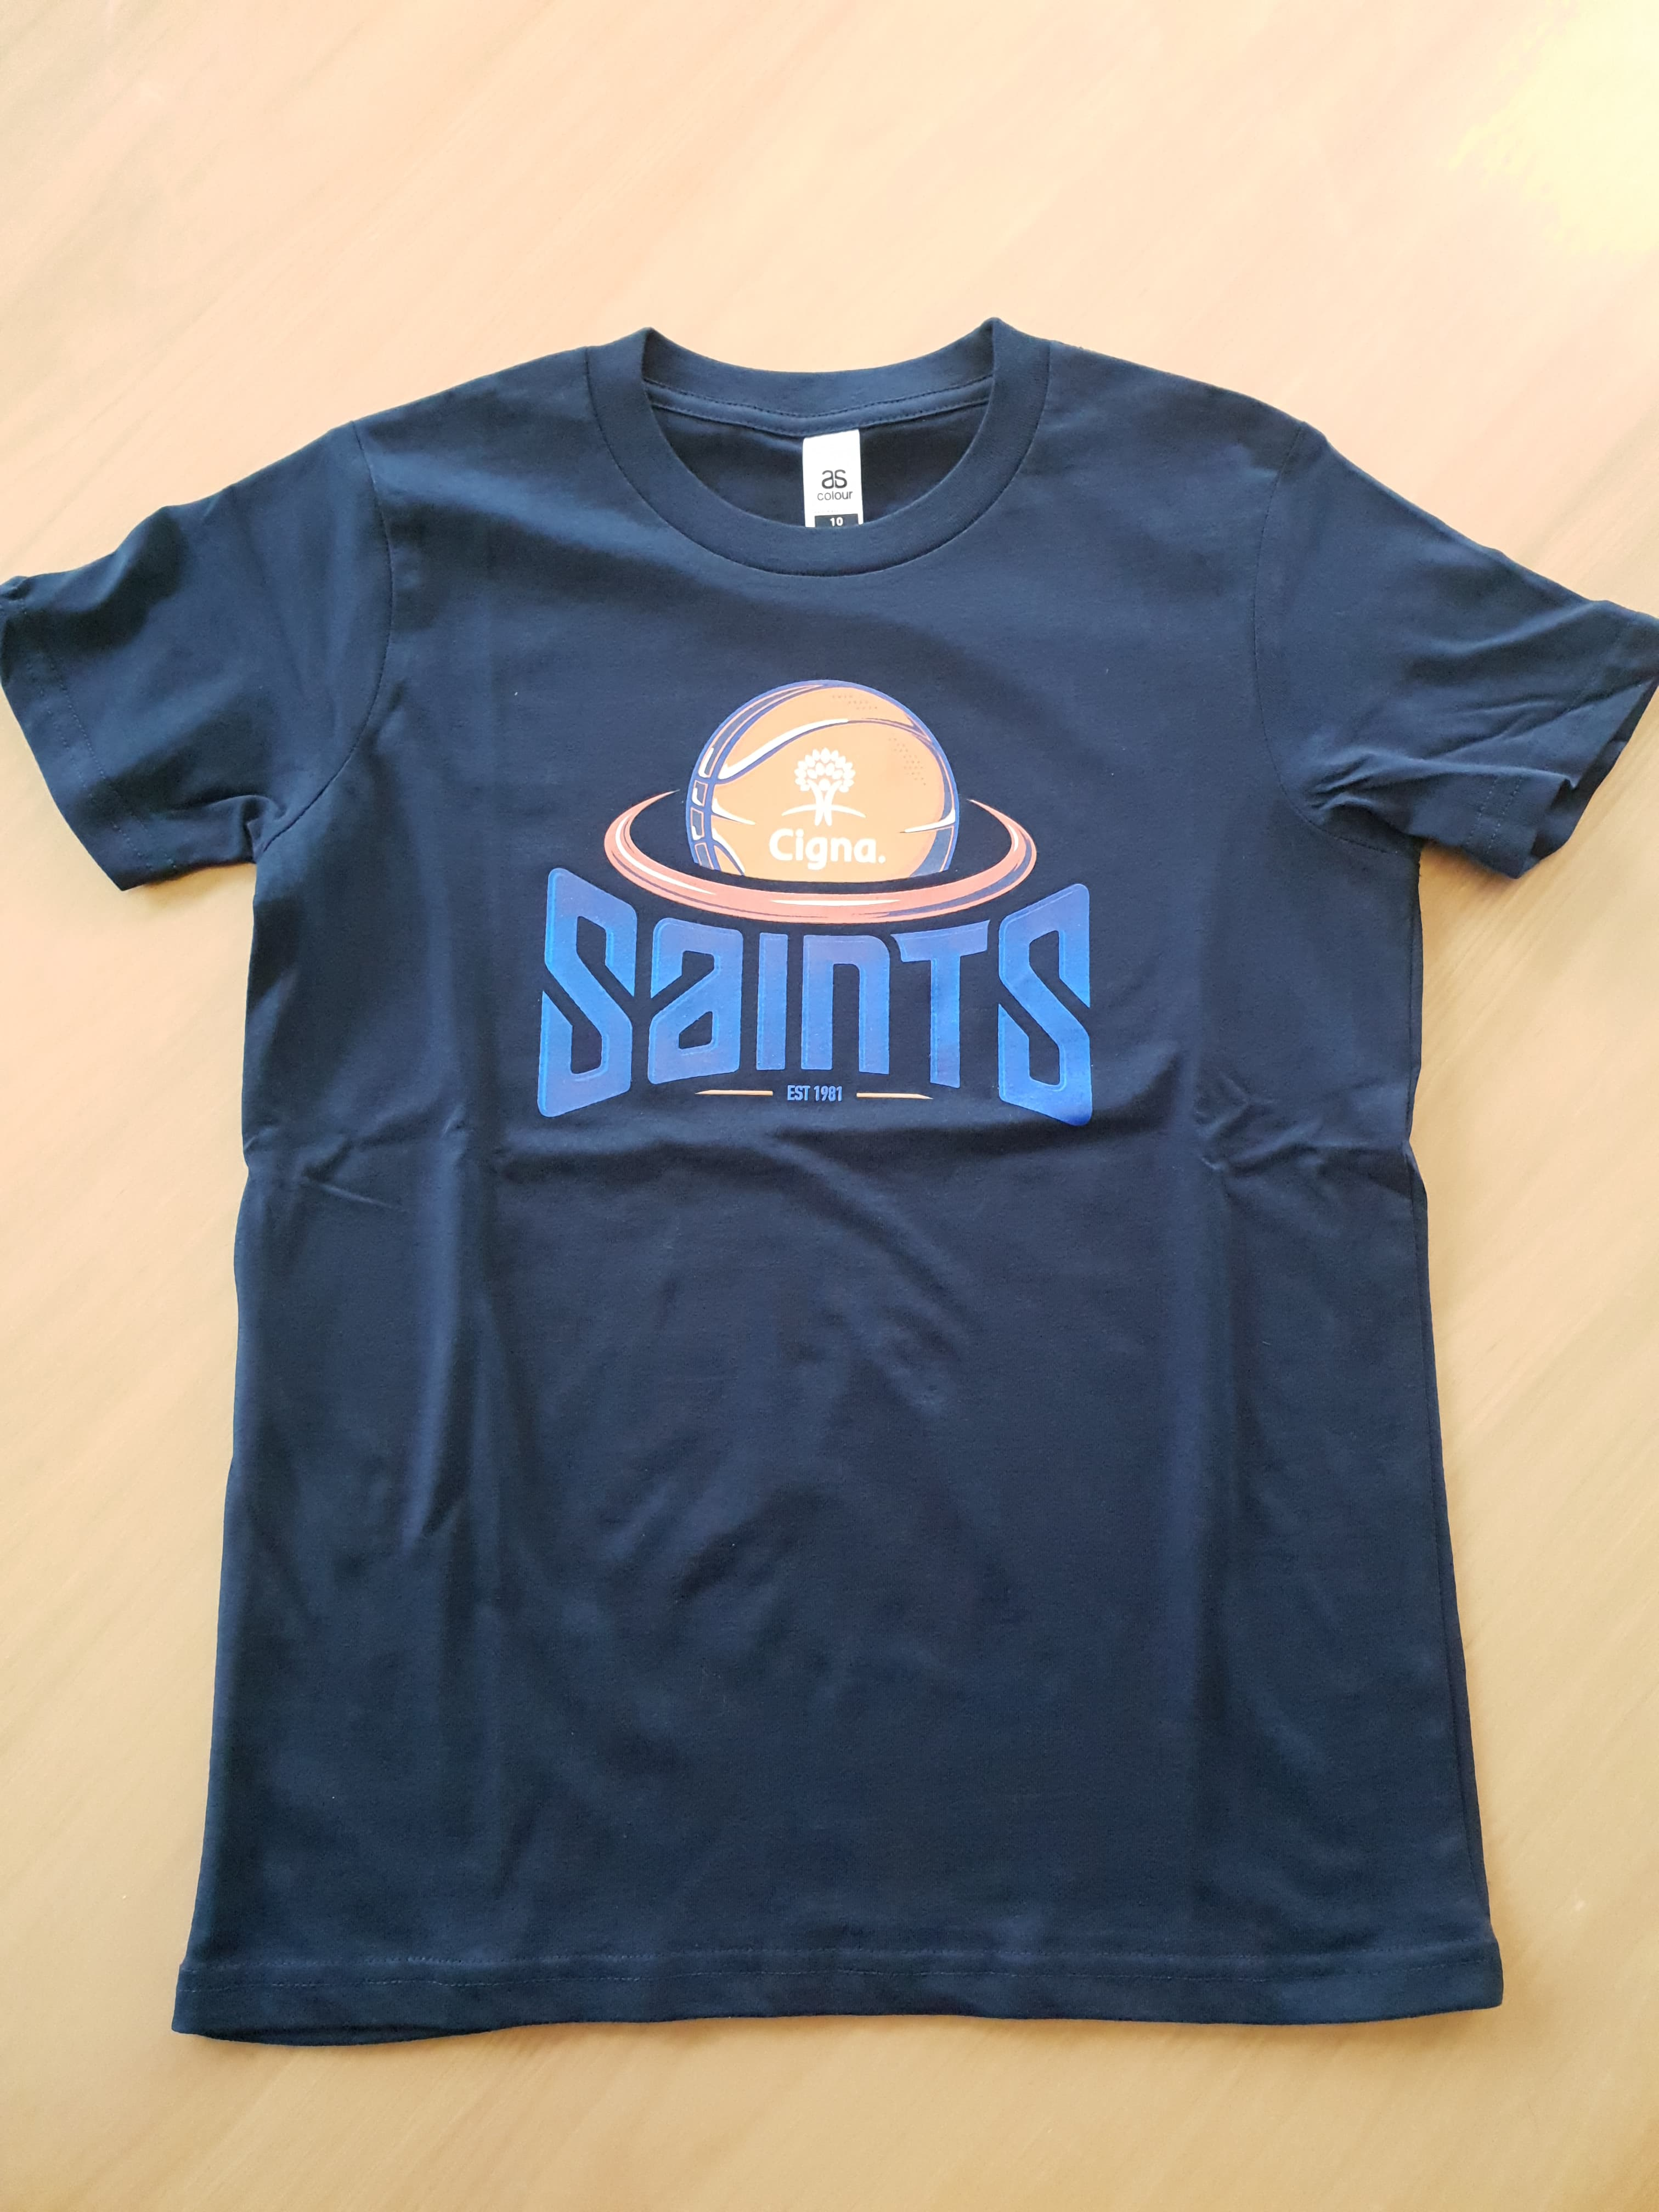 Cigna Saints Tee